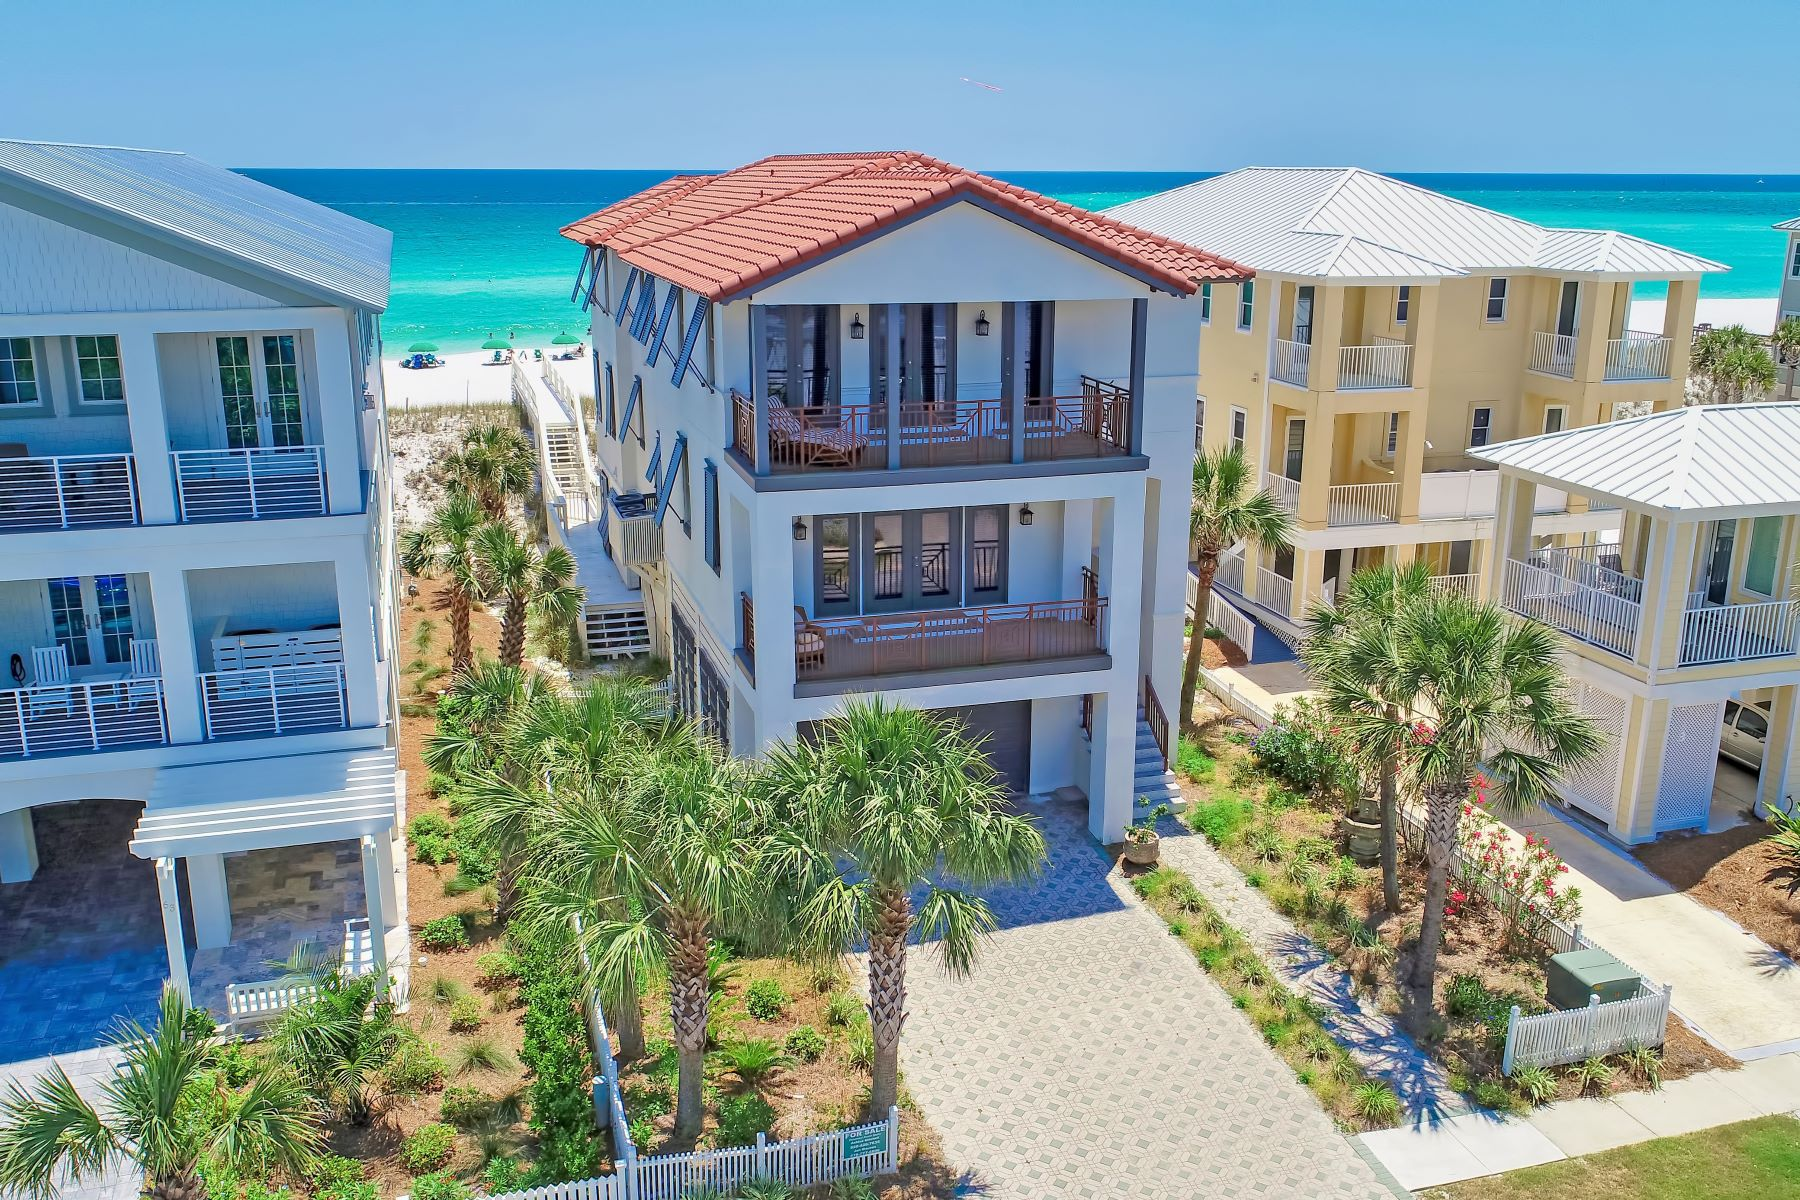 Single Family Homes için Satış at Gulf Front in Destin Pointe and Private Elavator 61 Lands End Drive, Destin, Florida 32541 Amerika Birleşik Devletleri